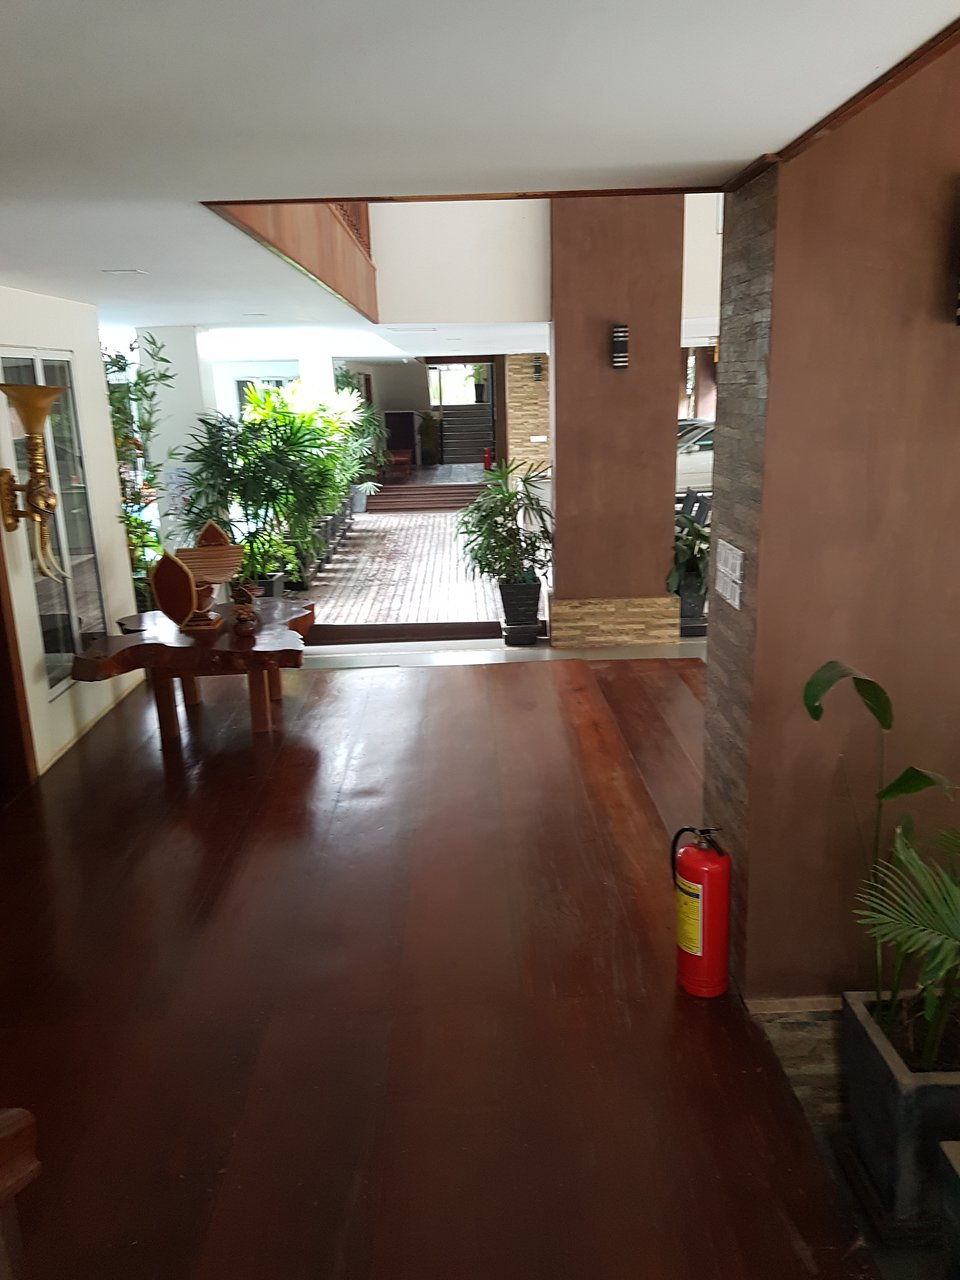 Residence Maison Blanche Lille sokhdom residence - prices & guest house reviews (siem reap